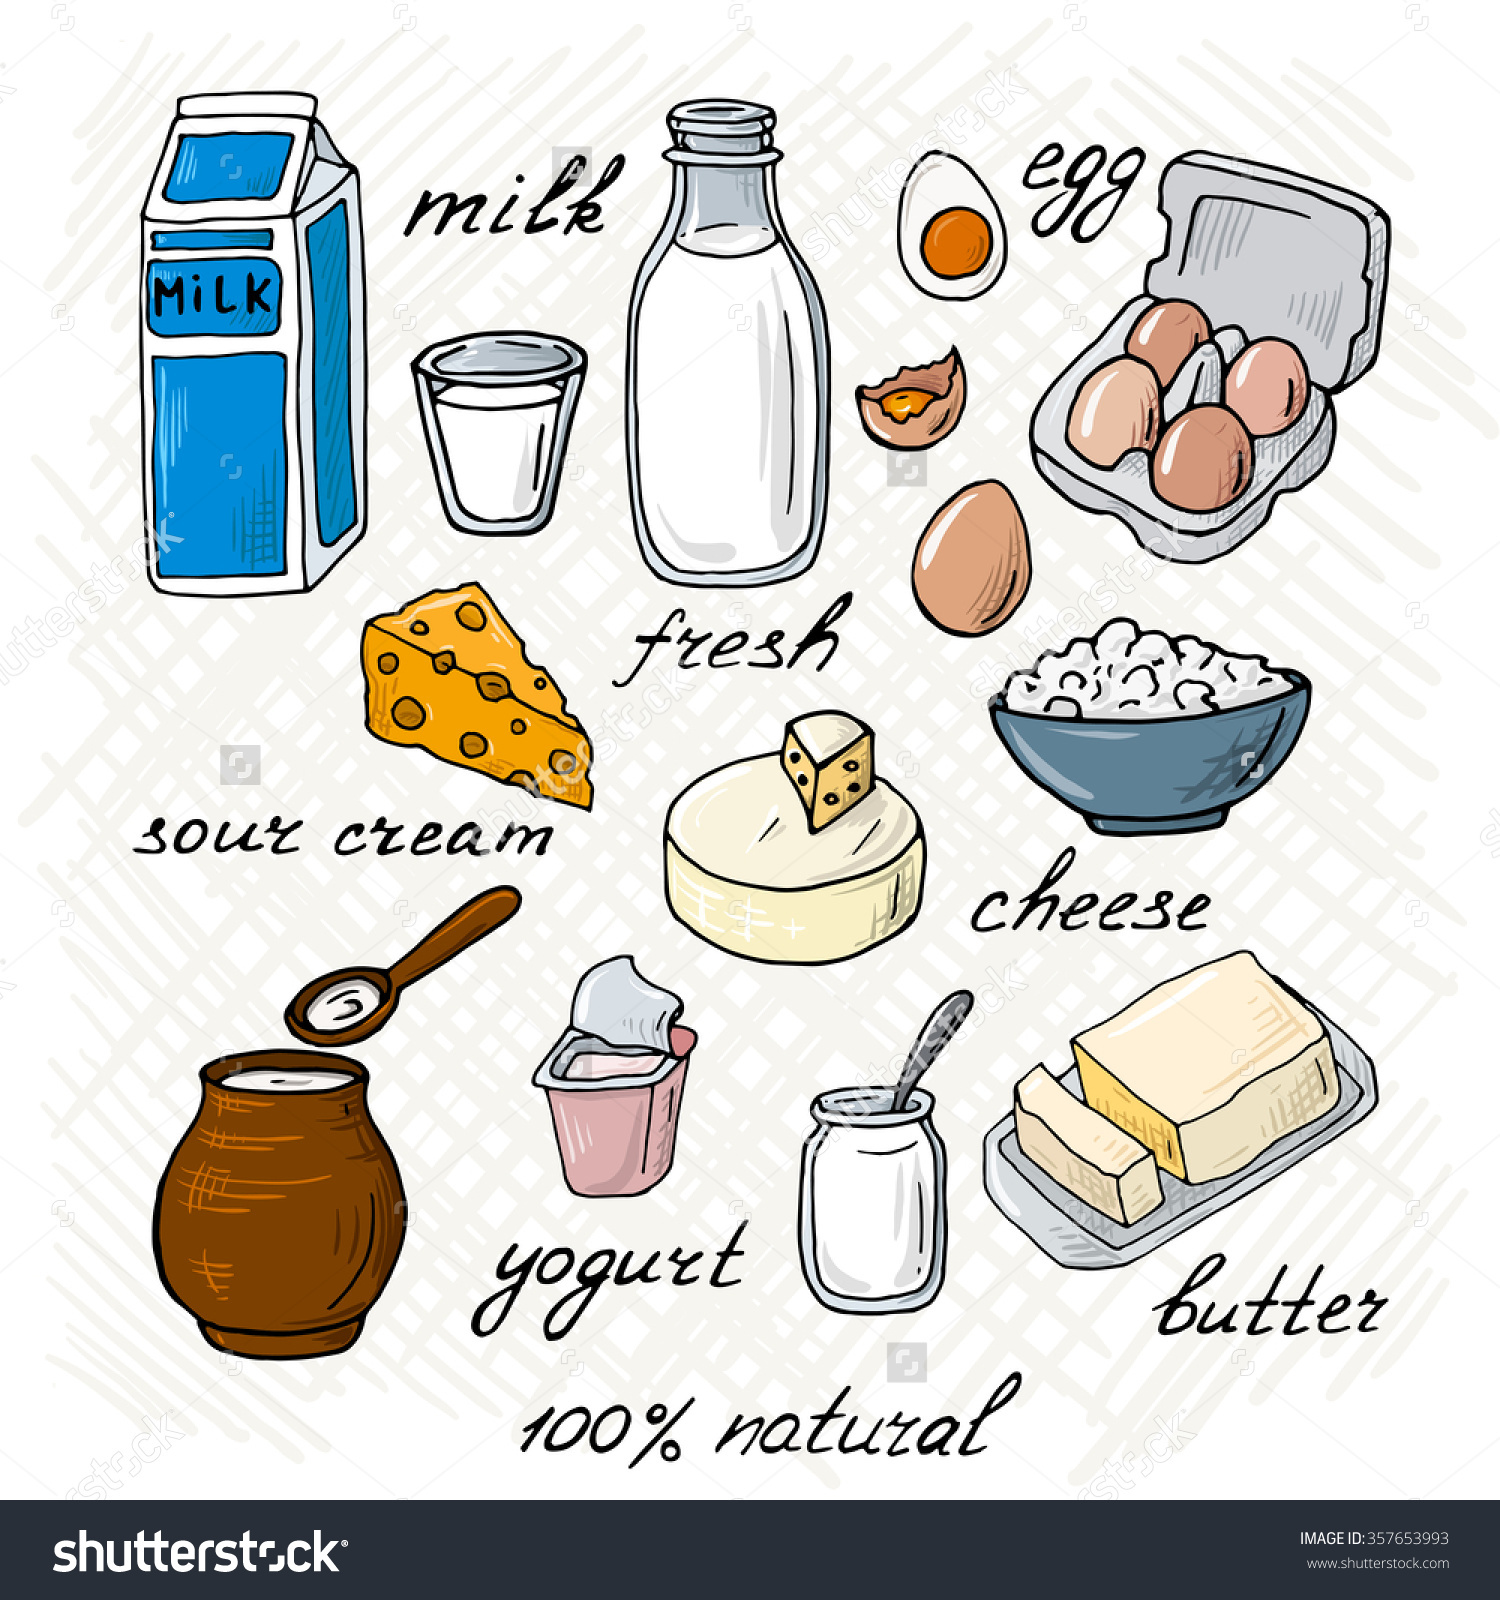 Milk products clipart - Clipground